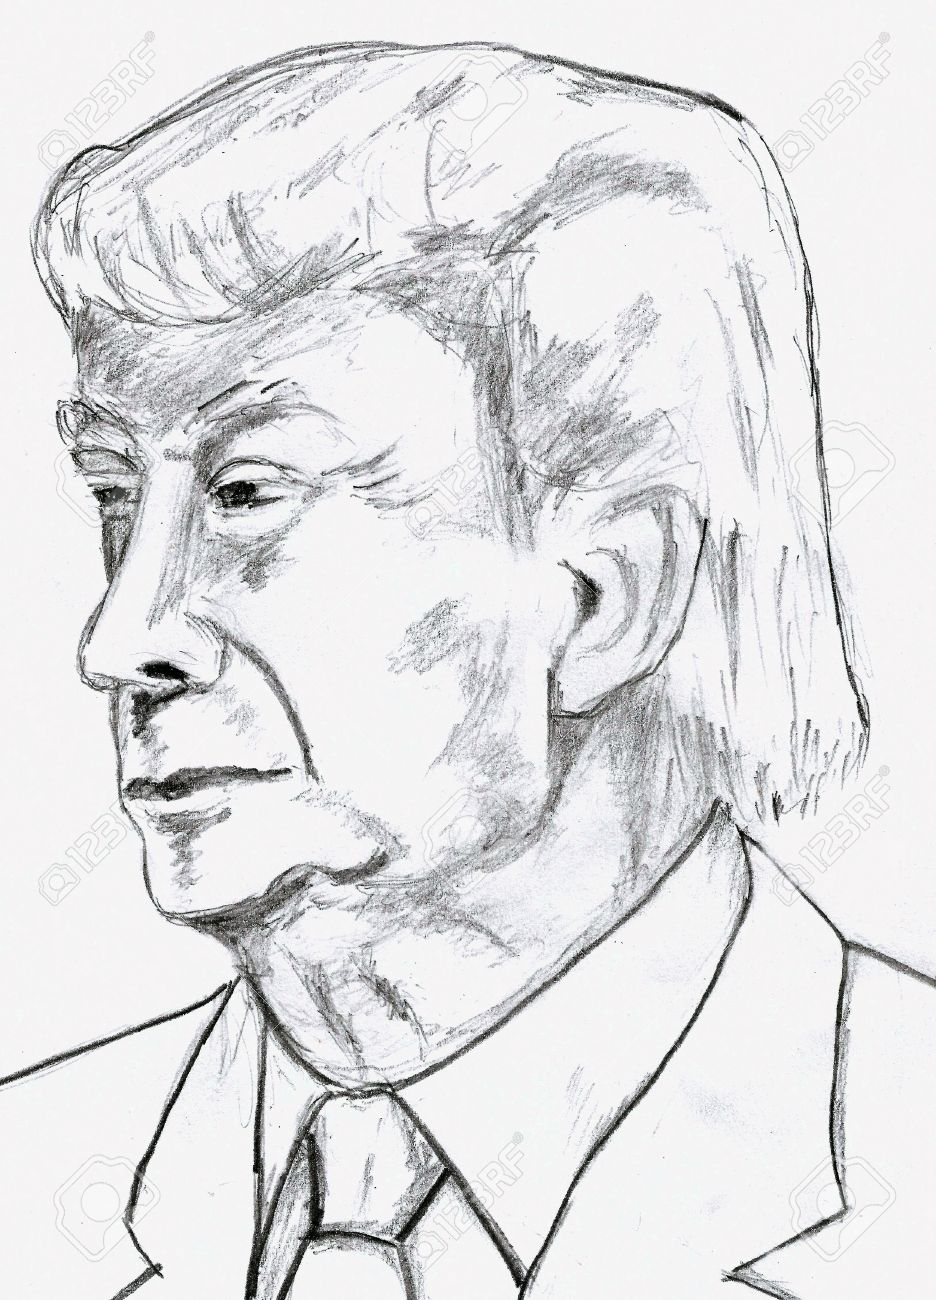 936x1300 Donald Trump Pencil Sketch Stock Photo, Picture And Royalty Free